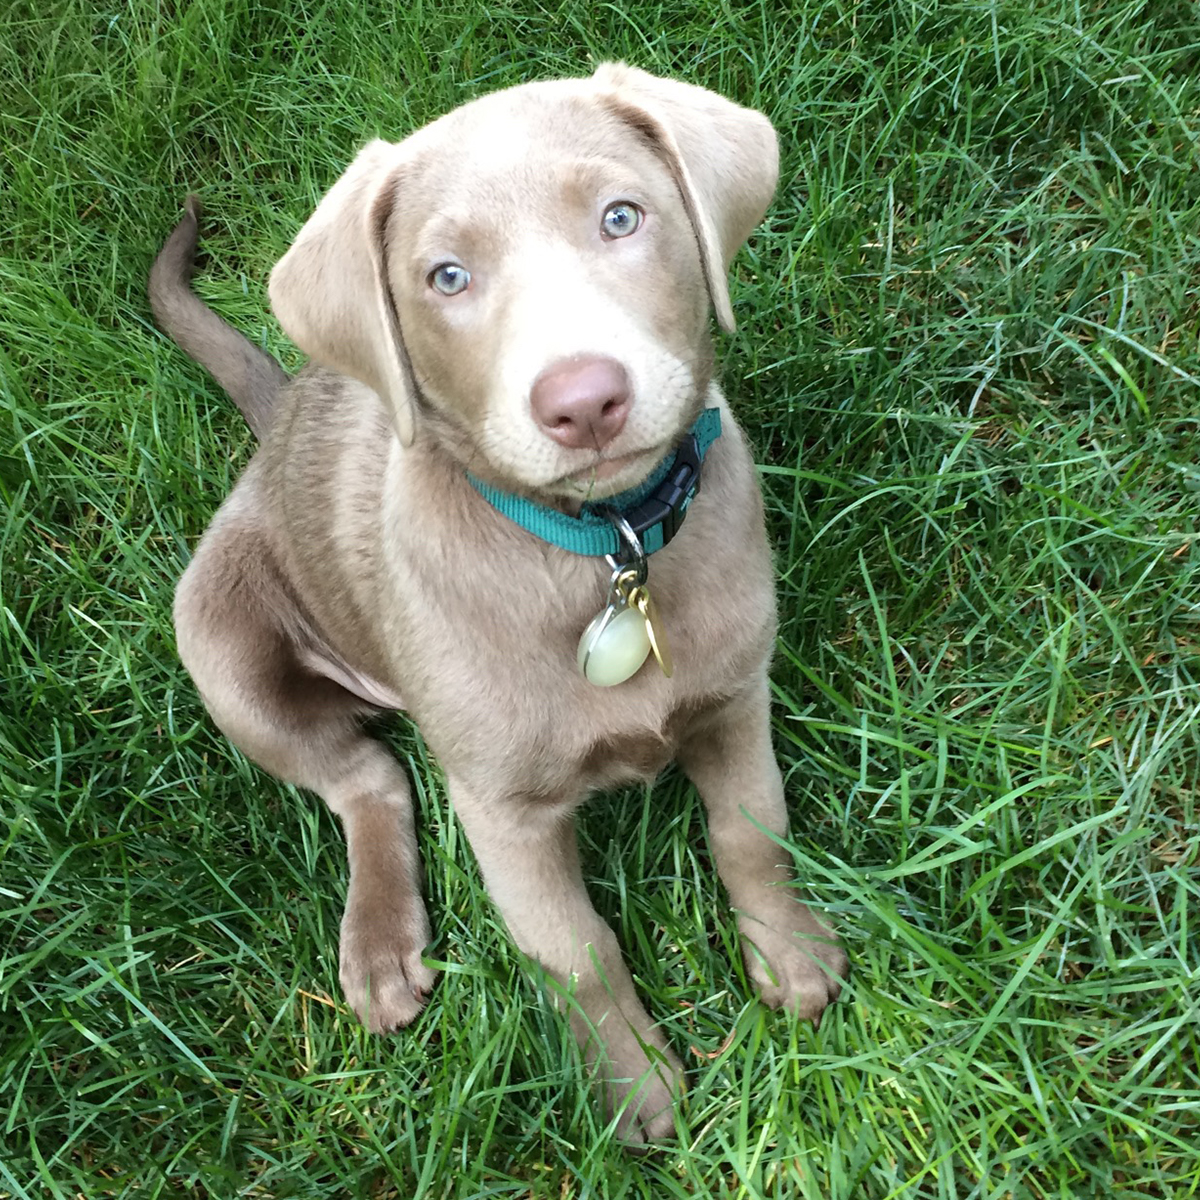 Silver Lab - The Facts About Silver Labrador Retrievers